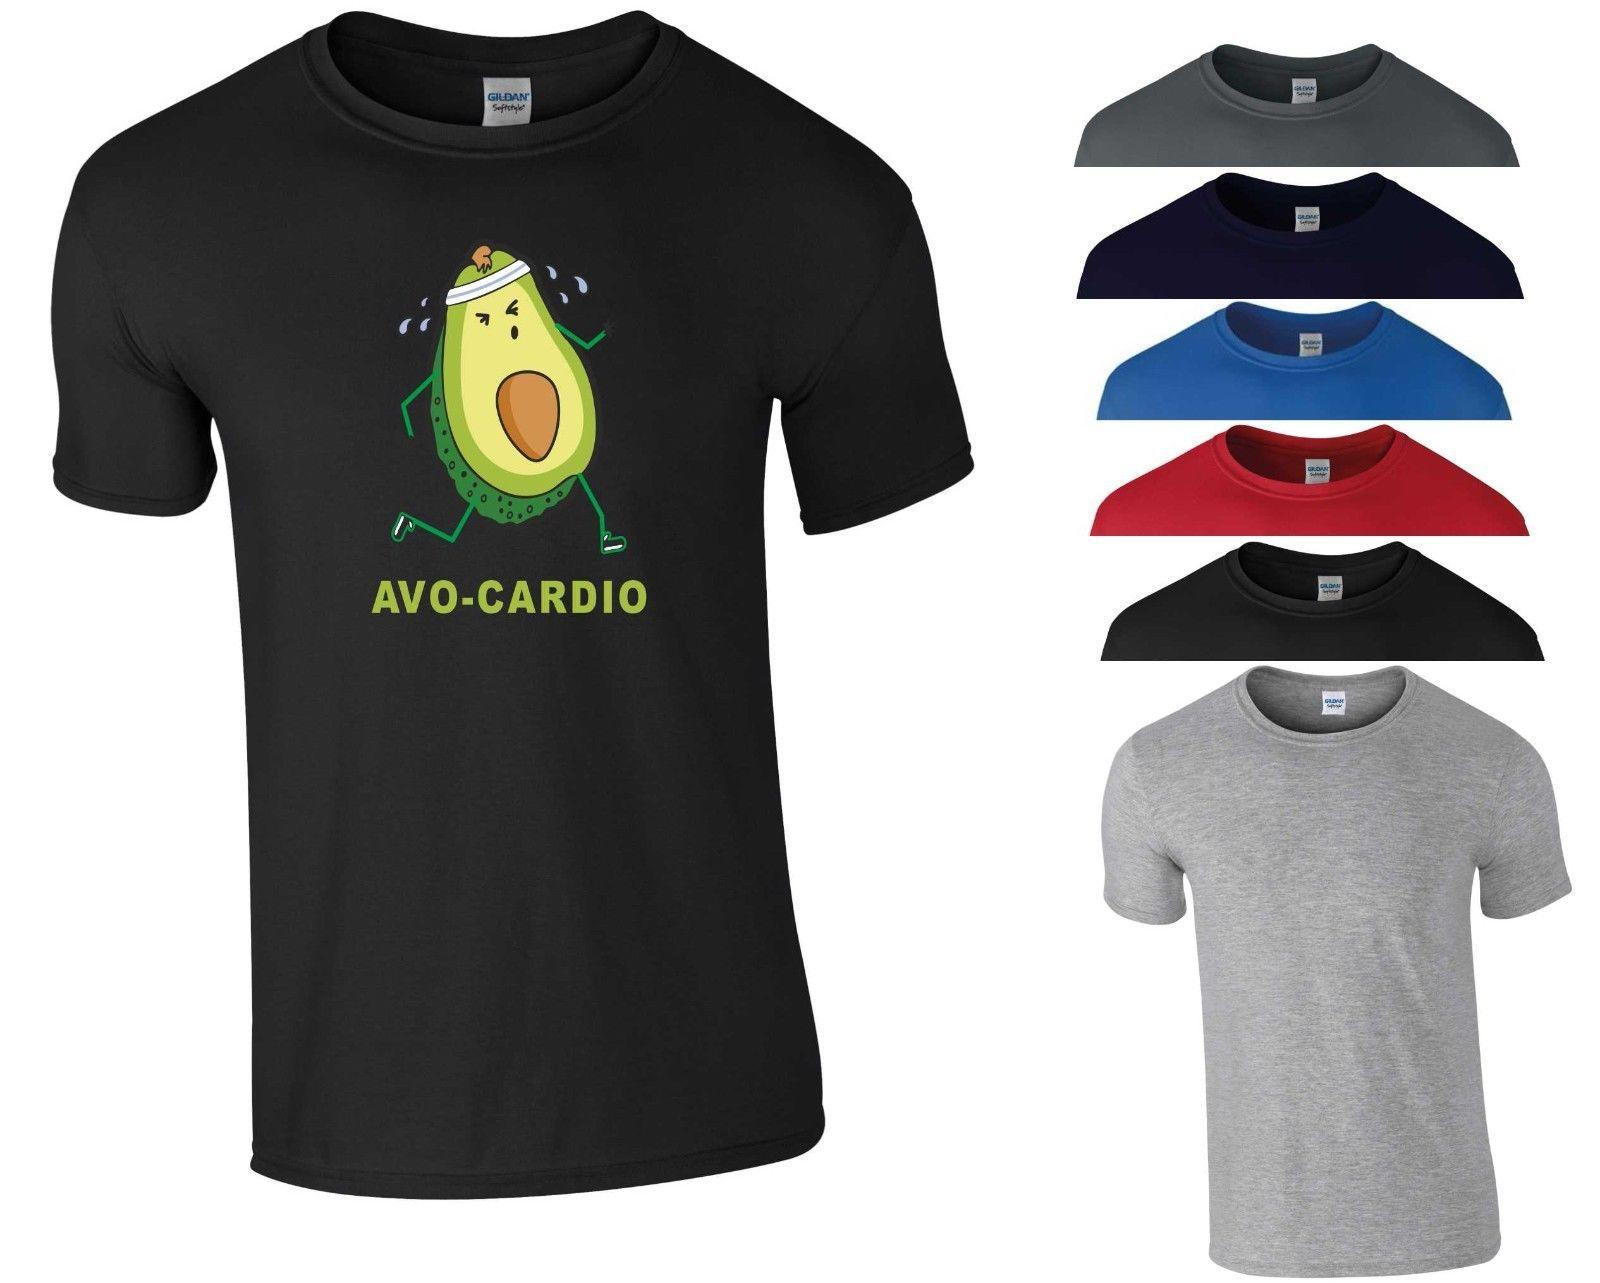 2cc42e0d Avocardio T Shirt Vegan Funny Gym Workout Avocado Fittness Exercise Gift Men  Top Funny Unisex Casual Tee Gift T Shirt Site Online Tees From  Shirt_monkey, ...